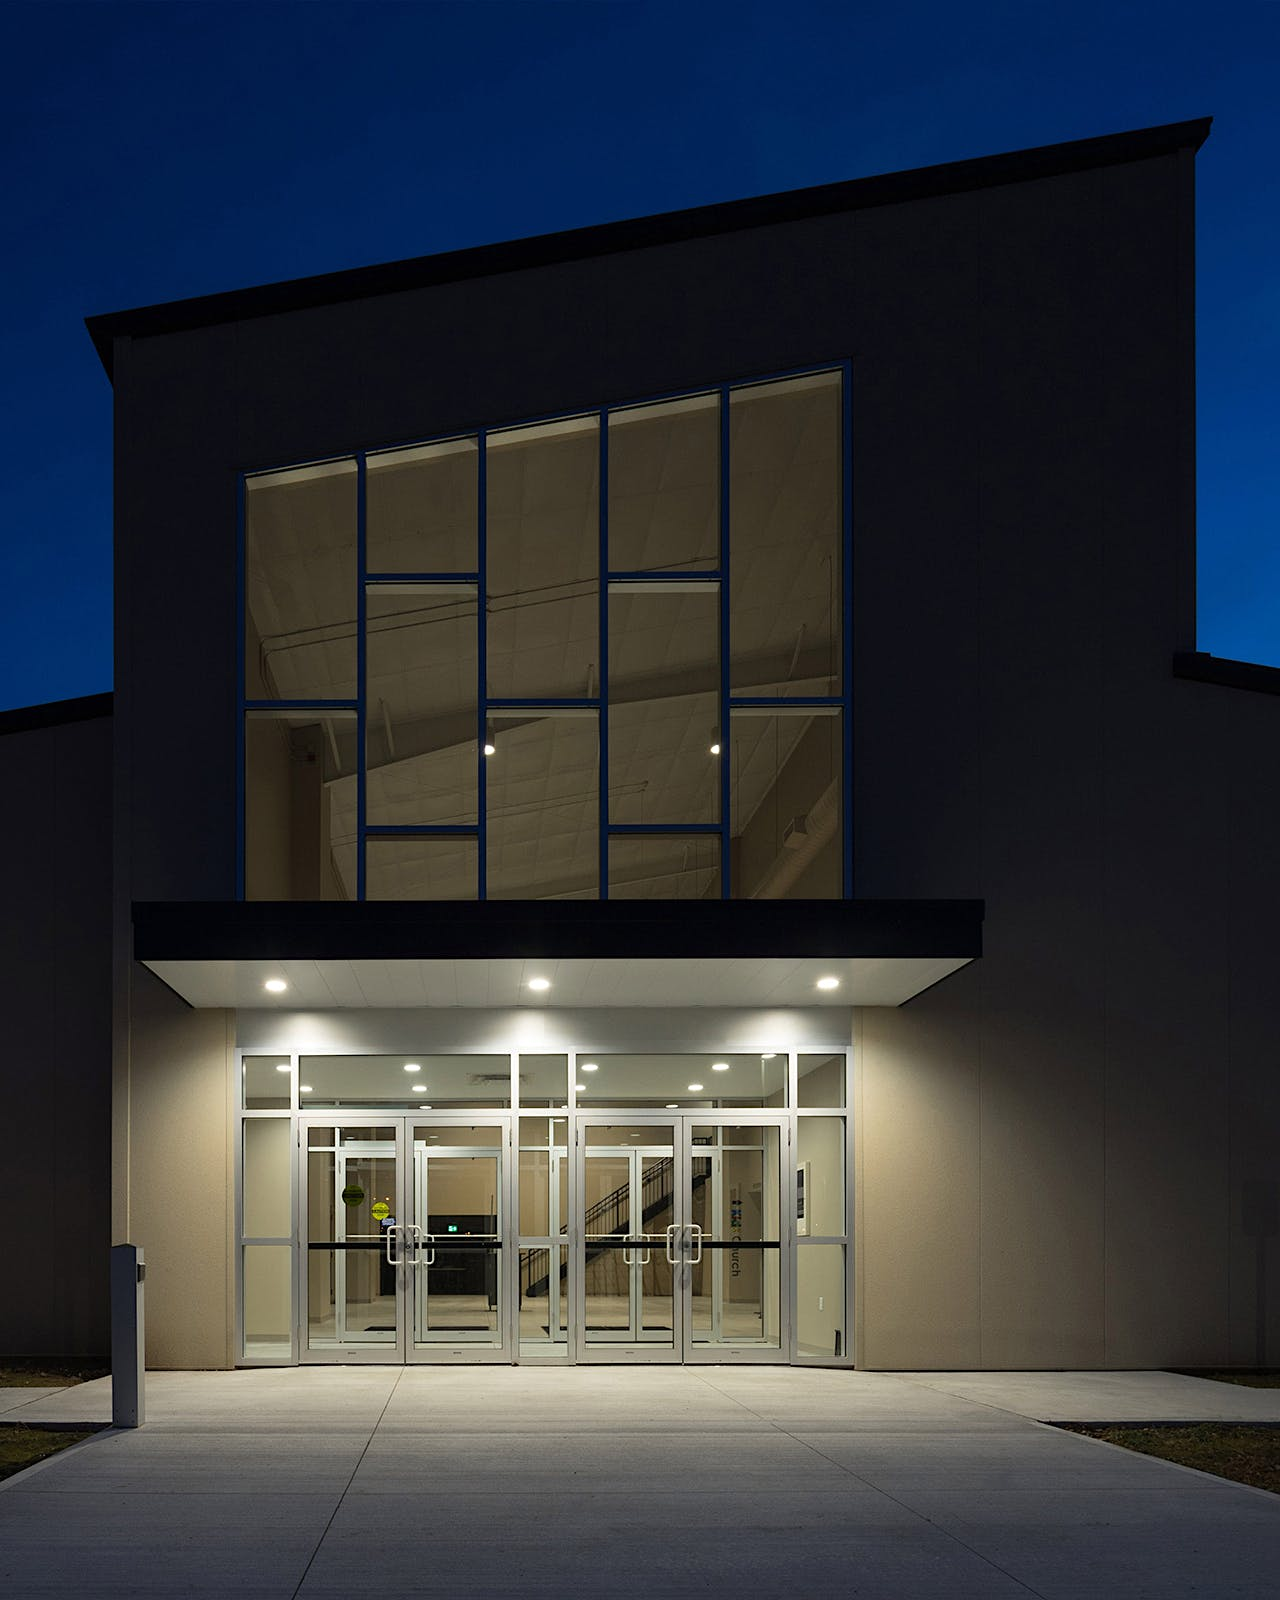 Twilight Architectural Photograph by Scott Webb for Grassmere